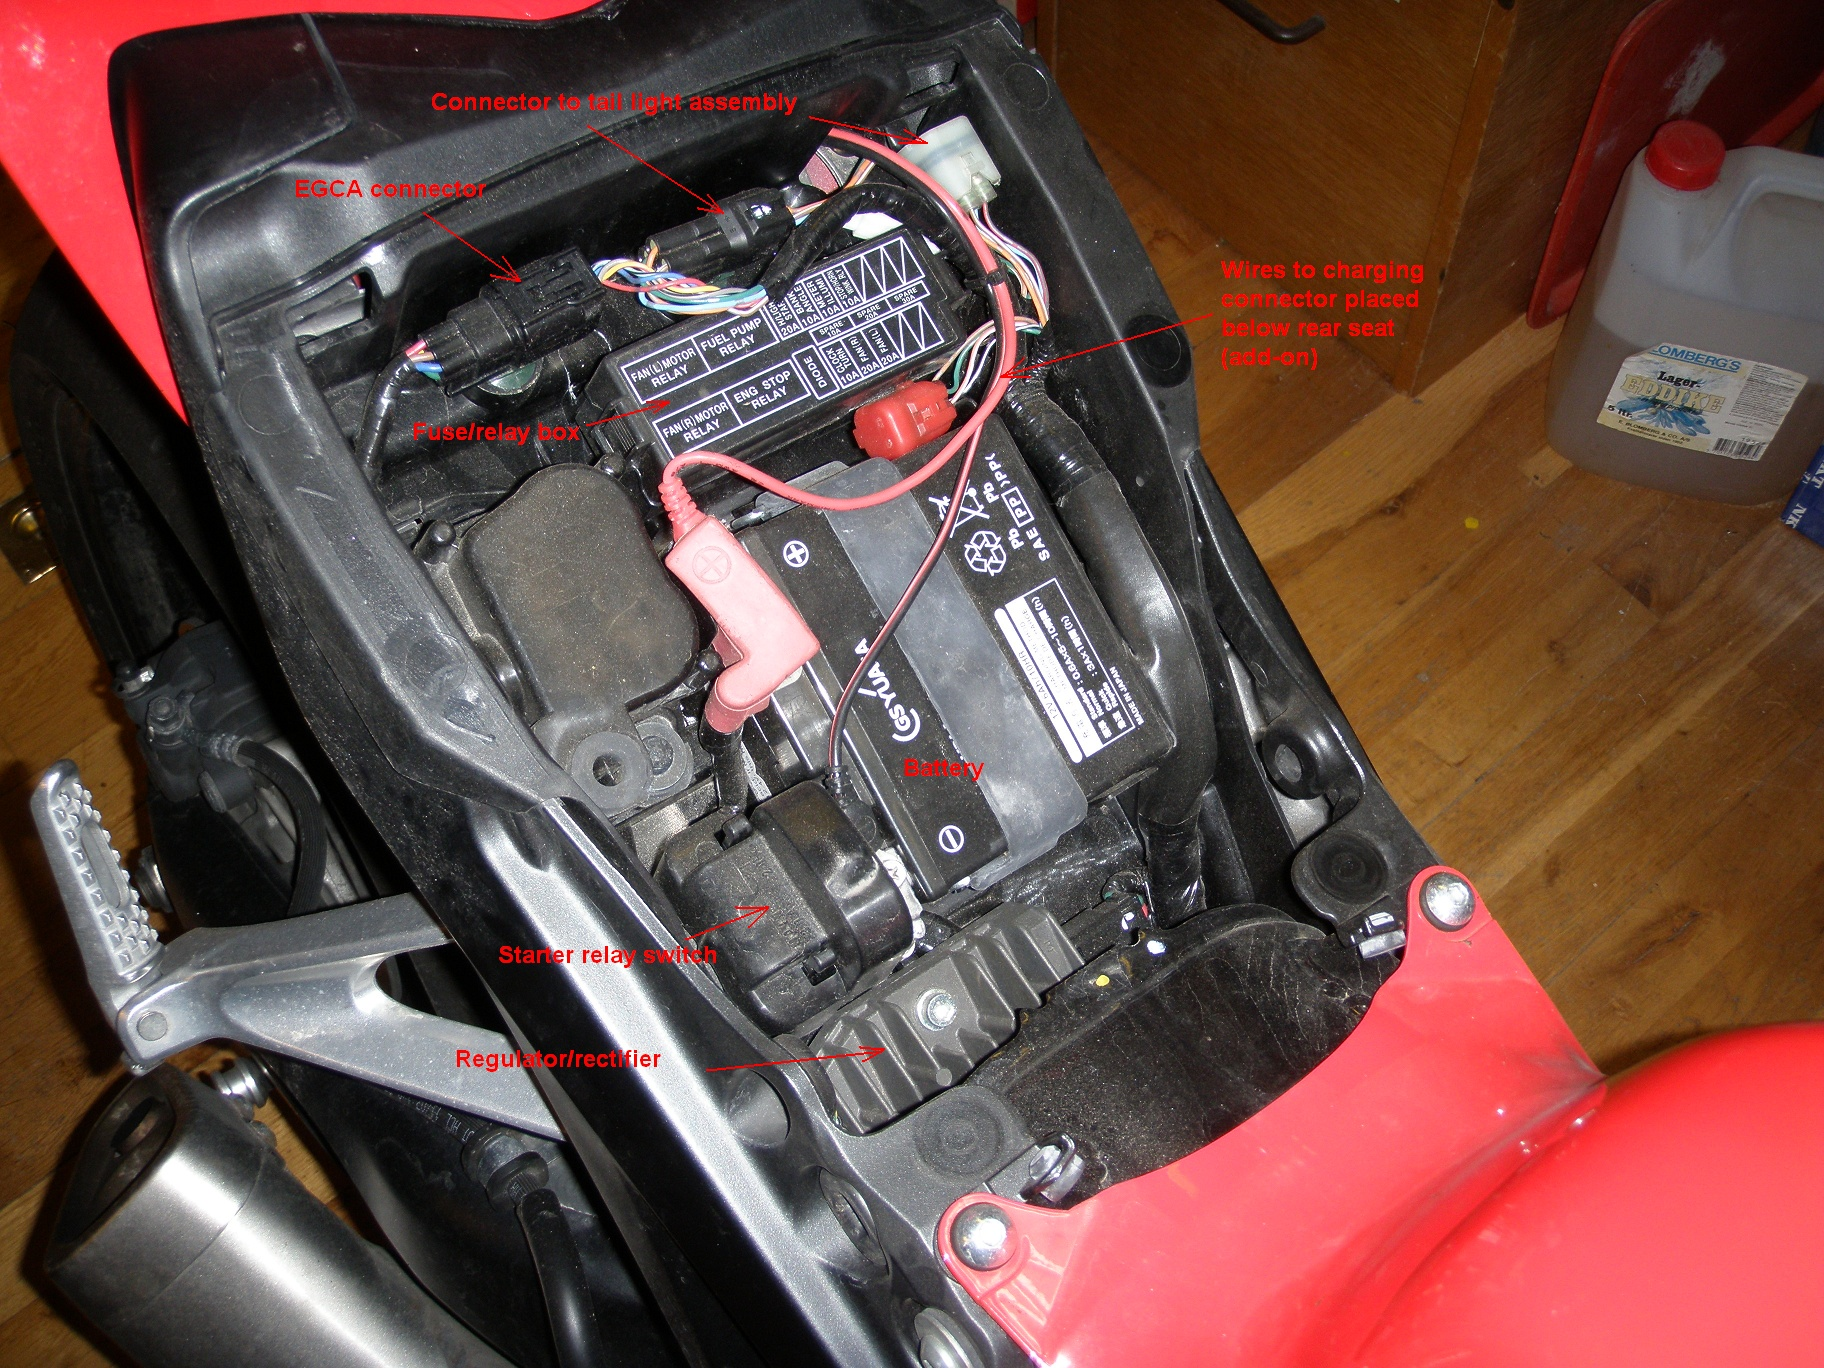 hight resolution of seat and side covers removal installation cbr1000rr8 diy 06 cbr 1000 rr fuse box location cbr1000rr fuse box